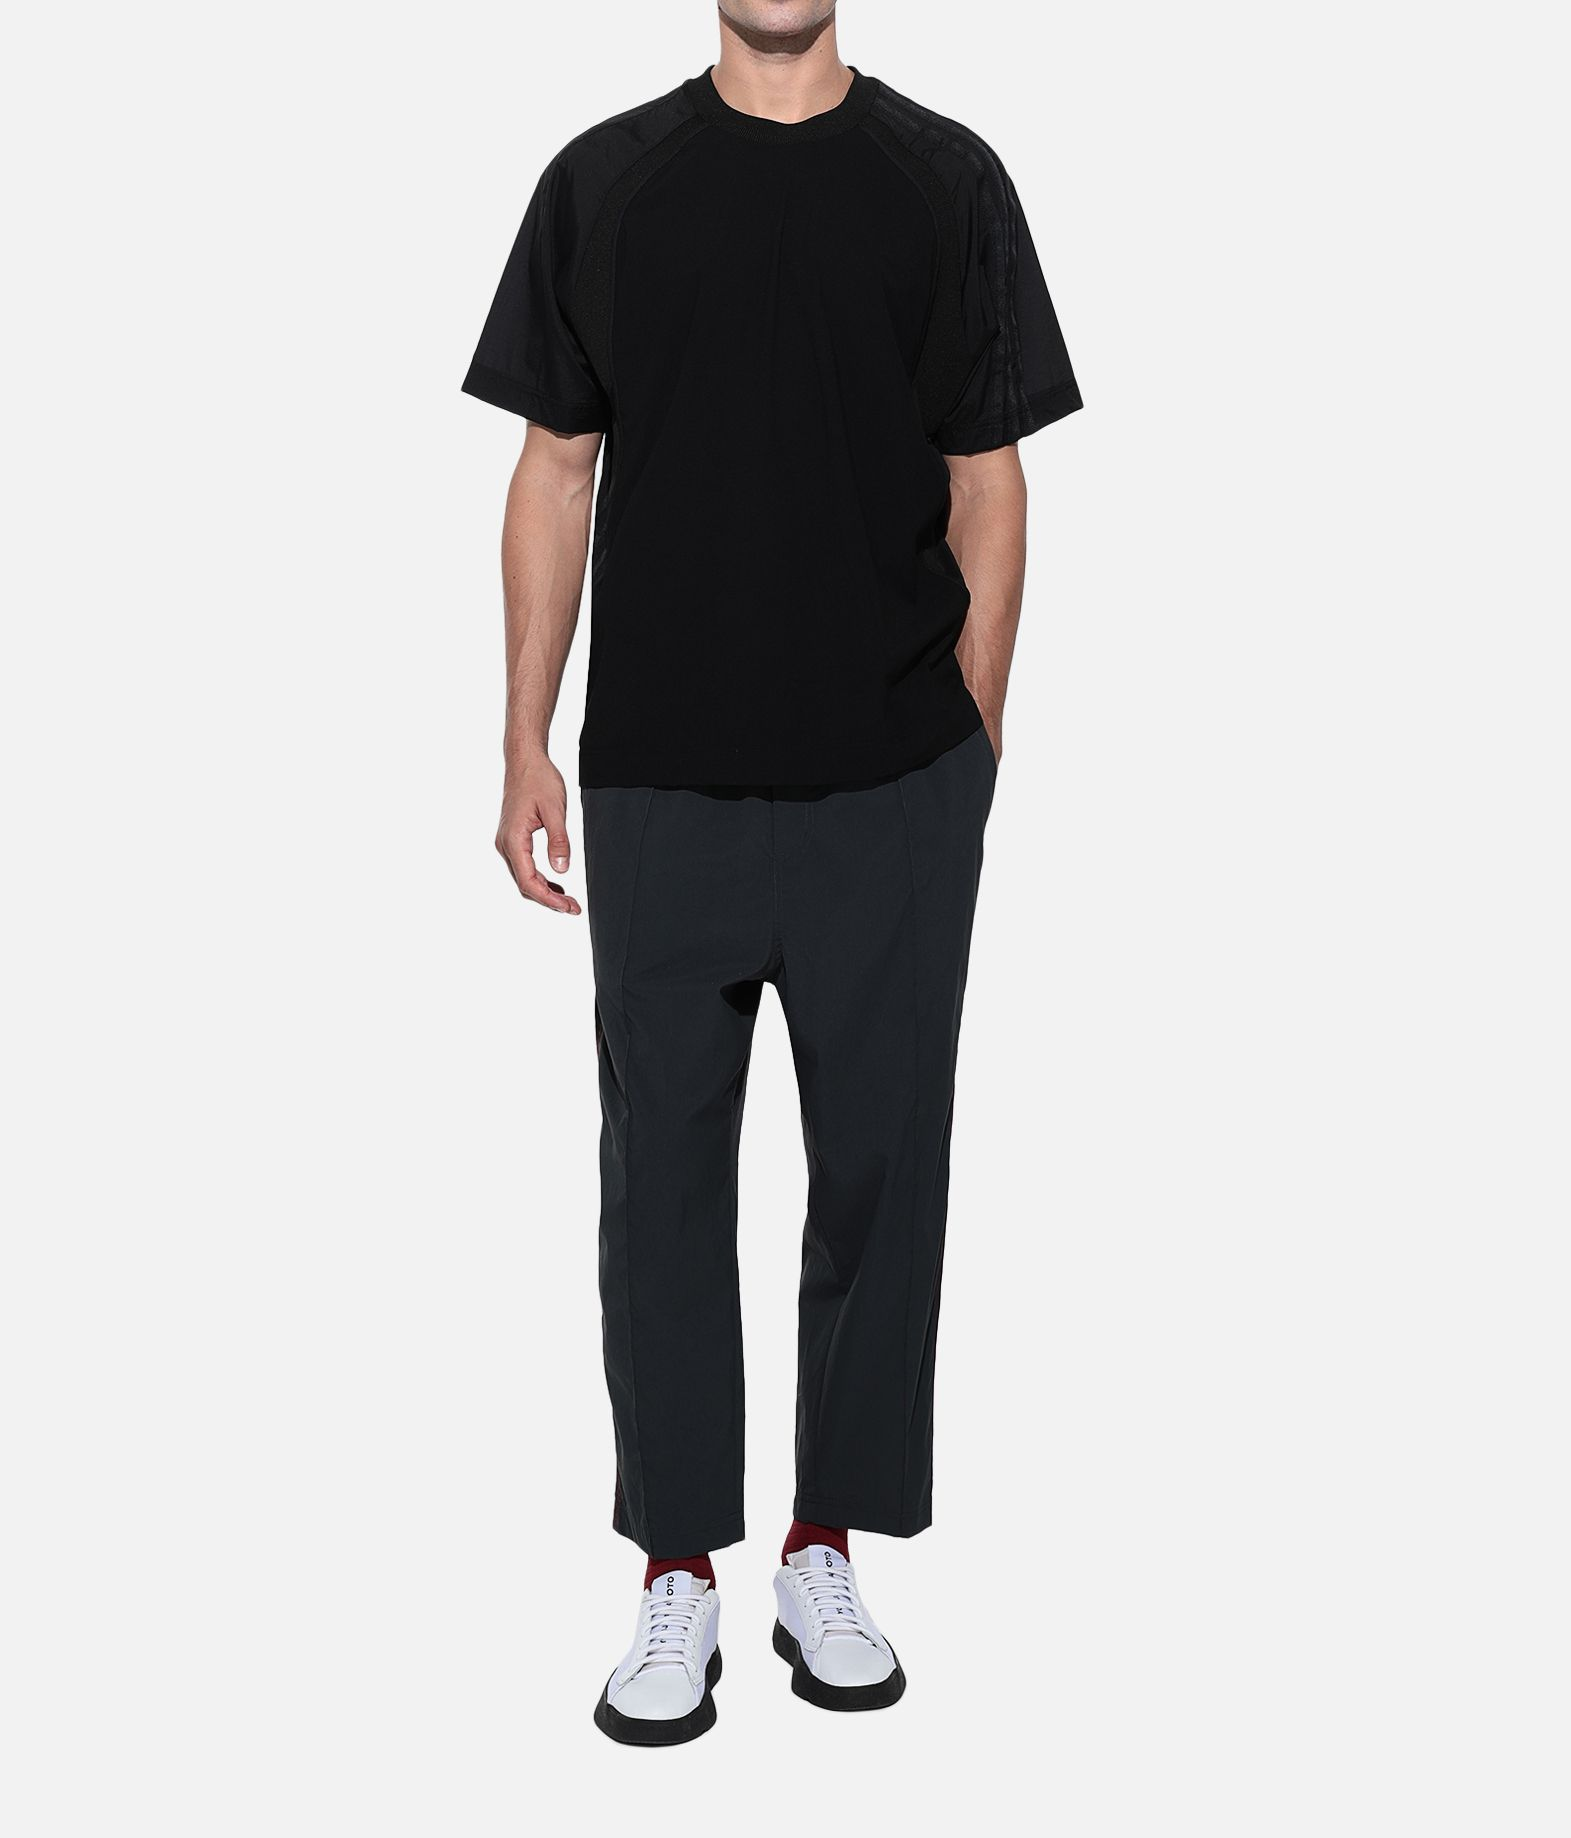 Y-3 Y-3 Luxe Track Pants Tracksuit pants Man a